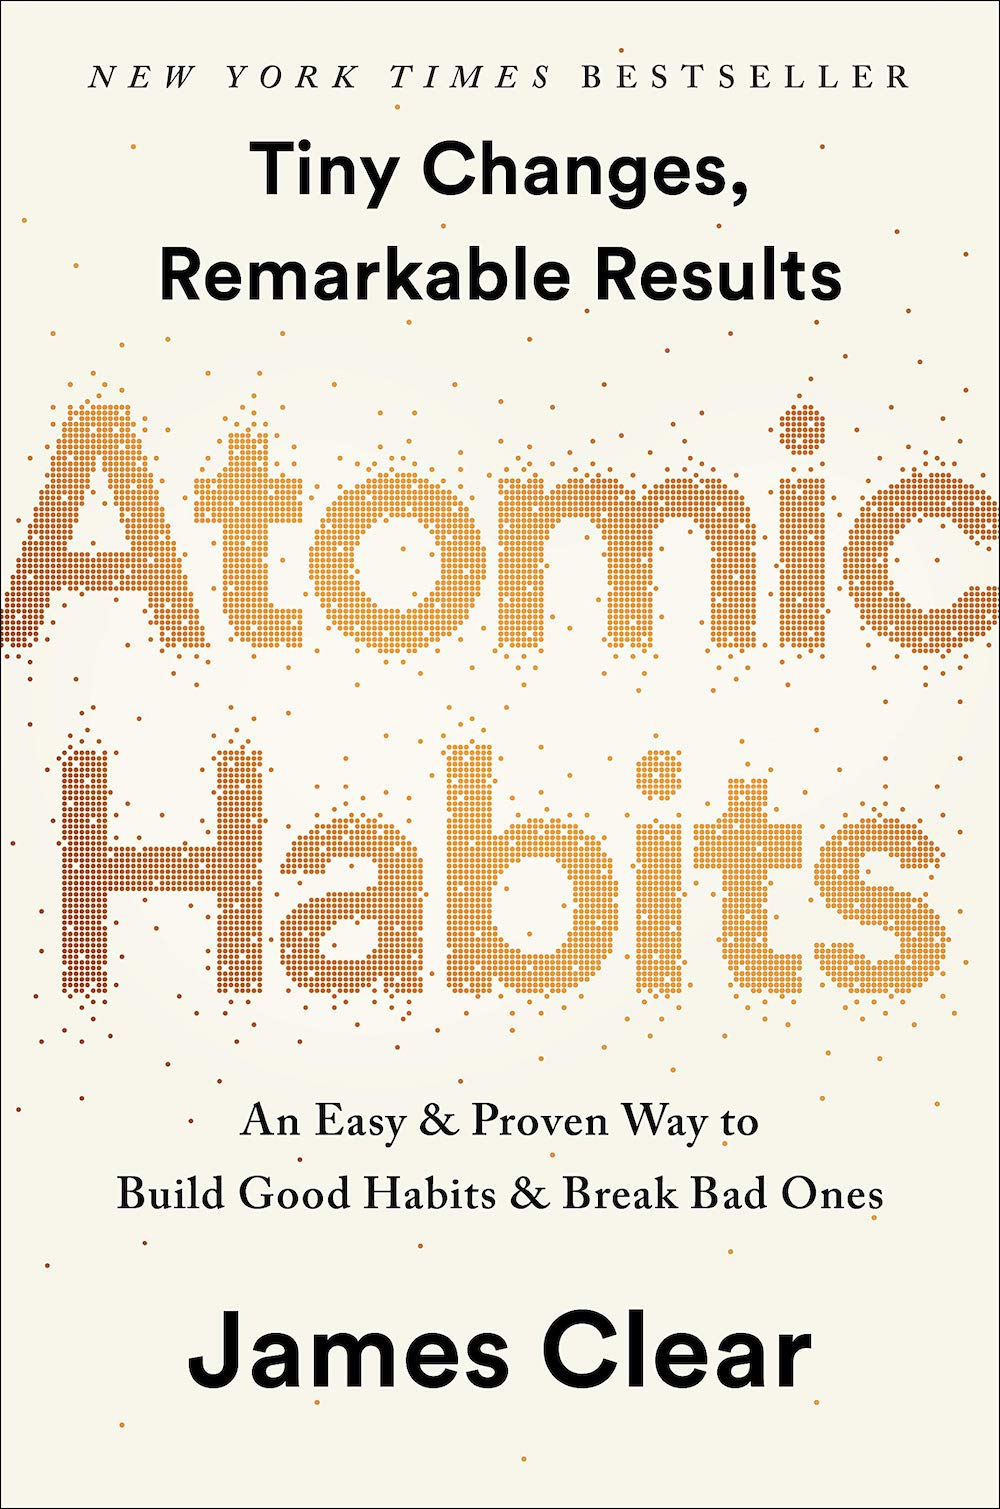 The cover of Atomic Habits